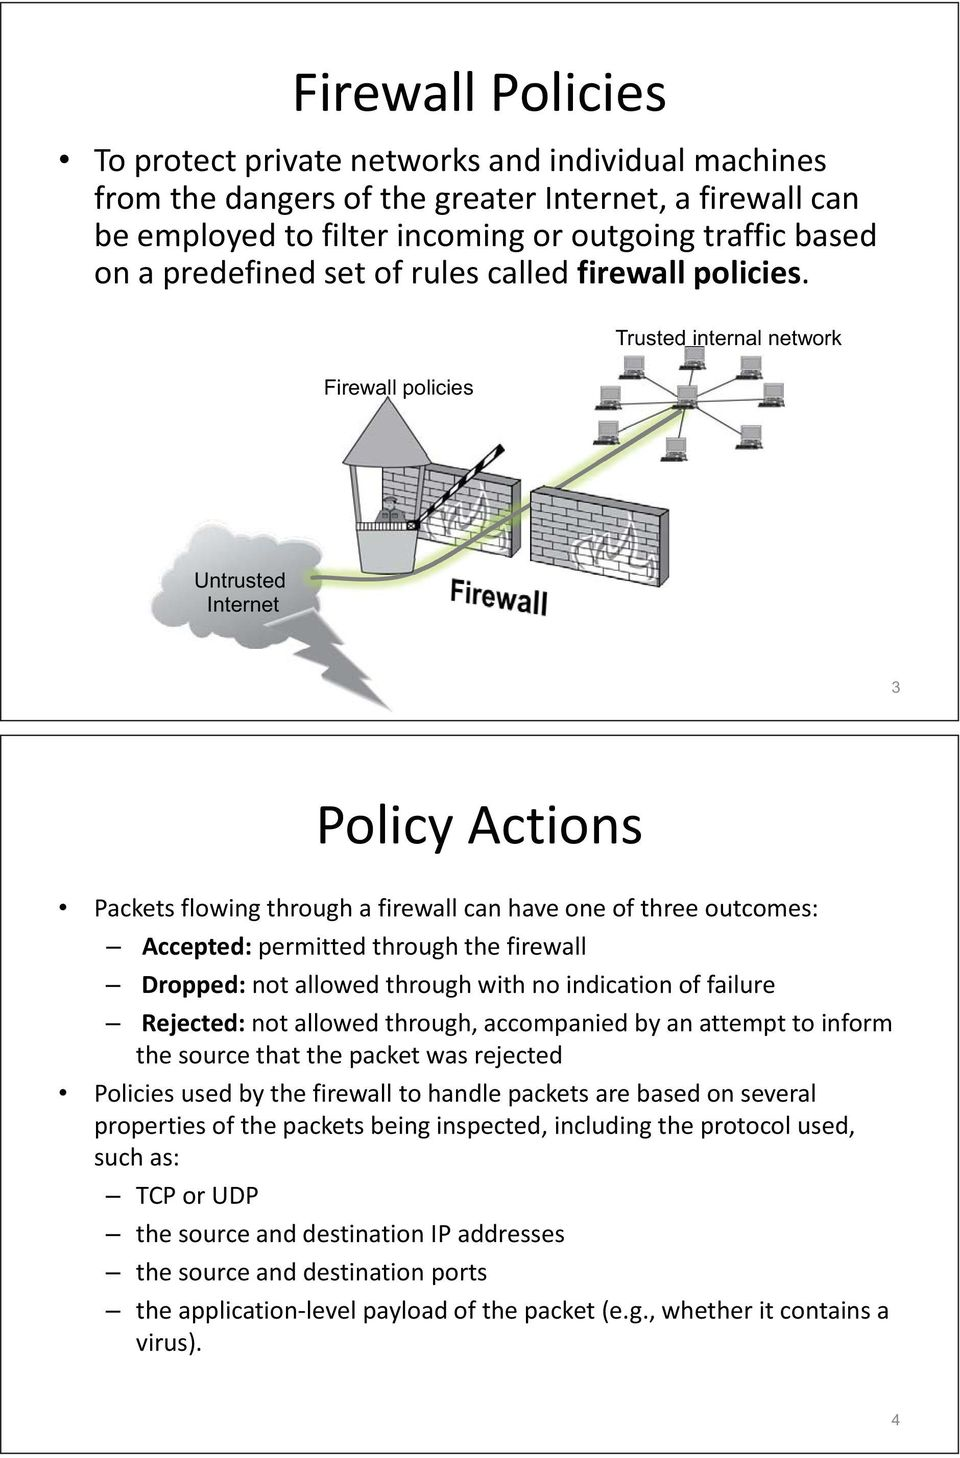 Firewall policies Trusted internal network Untrusted Internetet 3 Policy Actions Packets flowing through a firewall can have one of three outcomes: Accepted: permitted through the firewall Dropped: